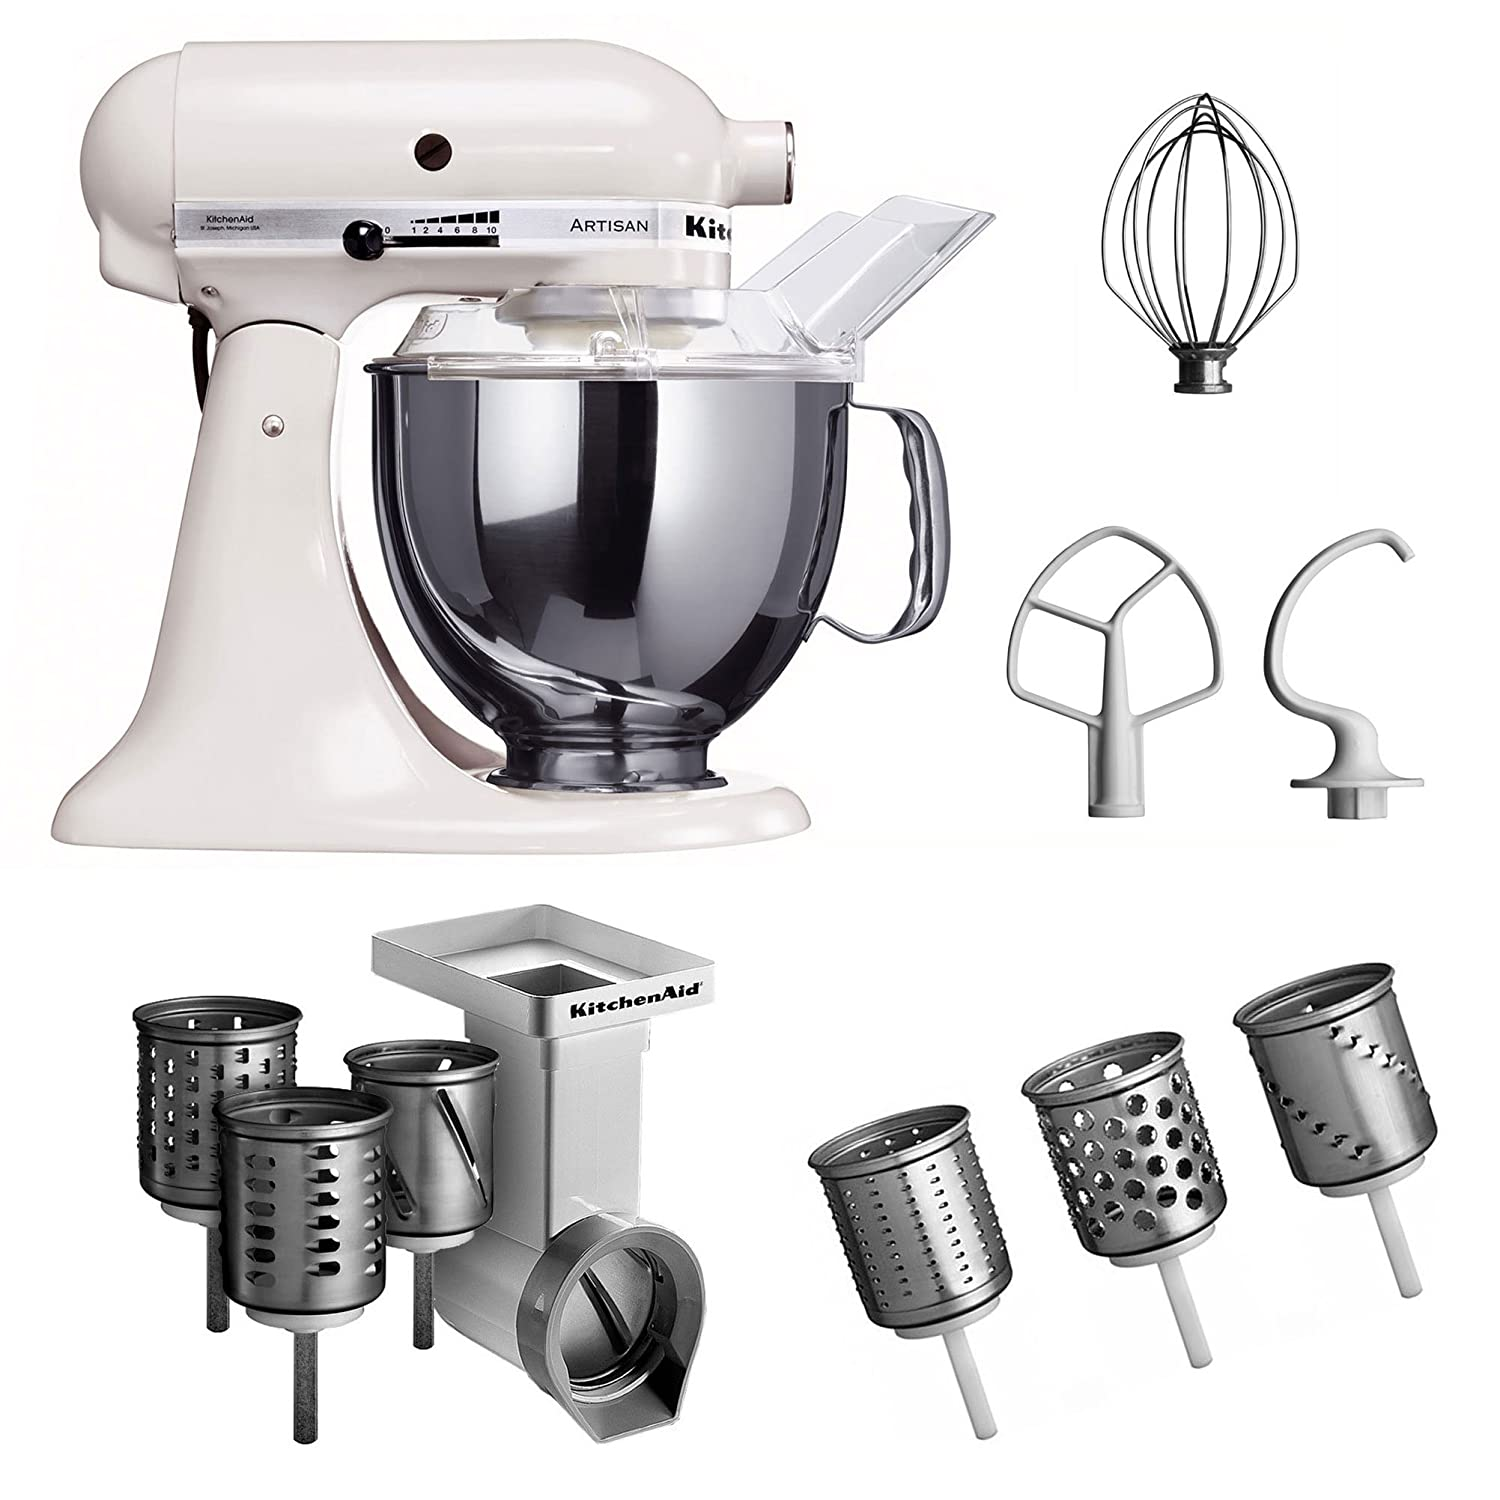 Amazon.de: KitchenAid Küchenmaschine Artisan weiß 5KSM150PSEWH